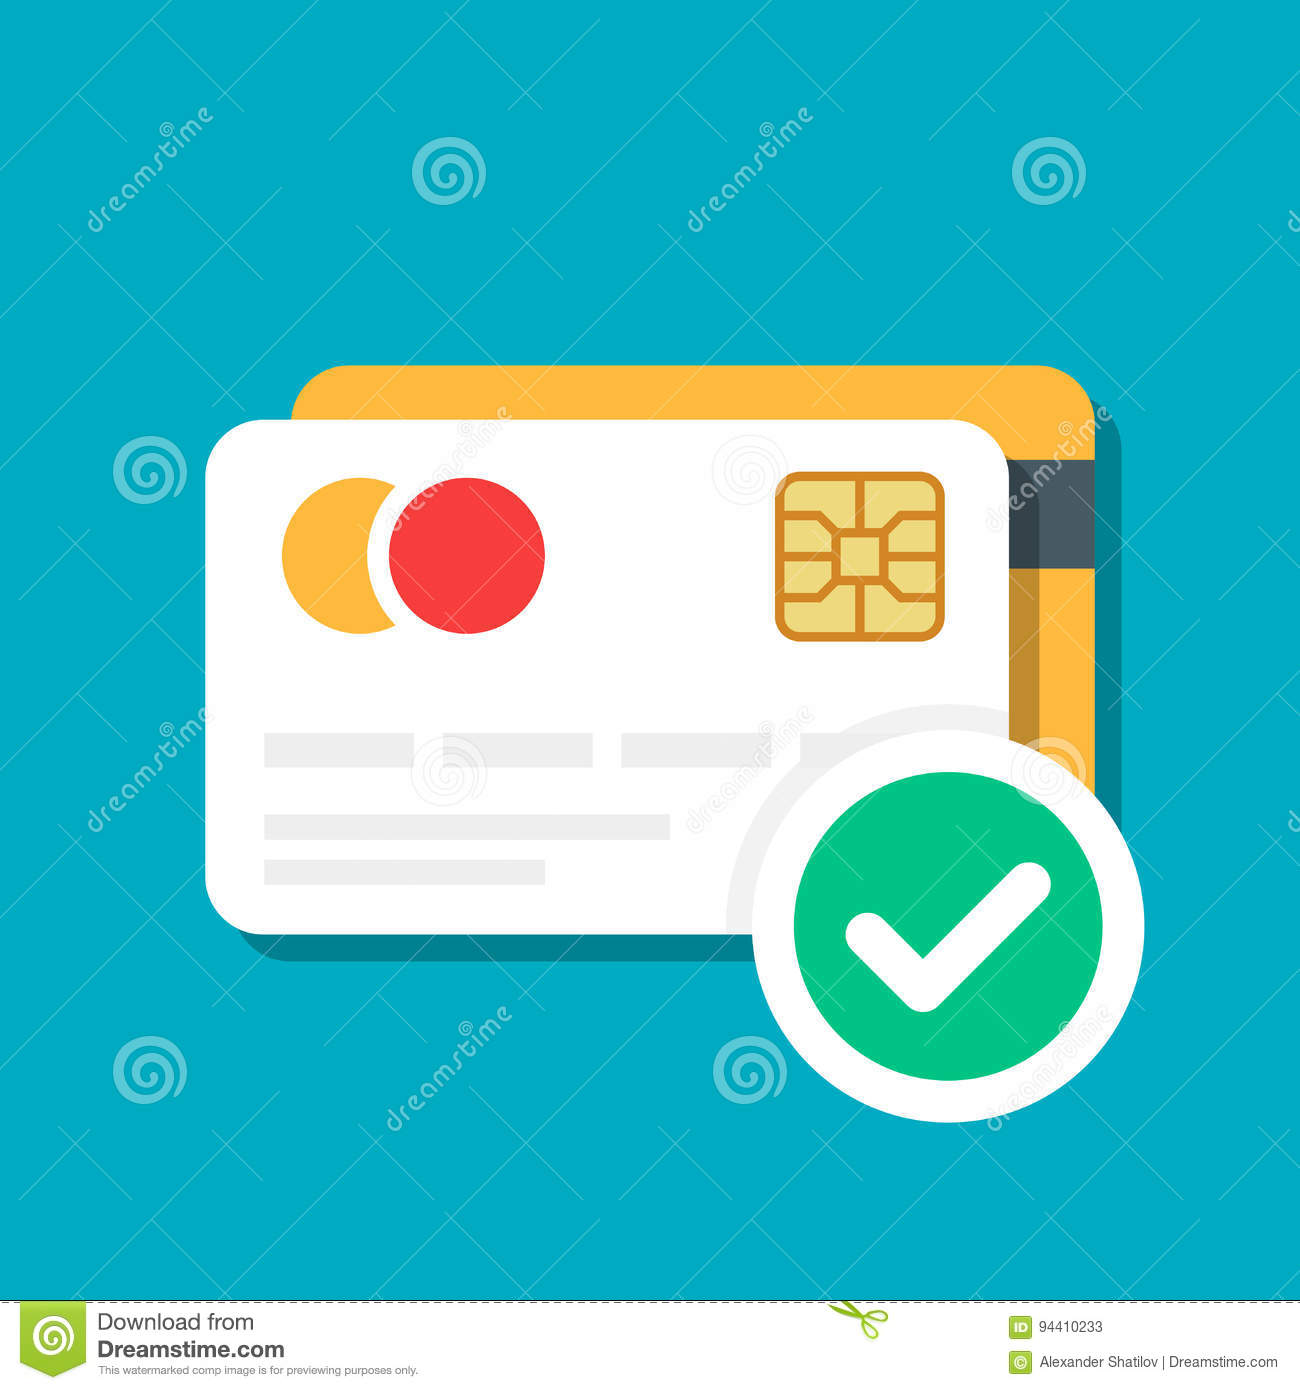 Plastic debit or credit card with a payment approved icon. Bank card. E-commerce. Vector illustration isolated on color